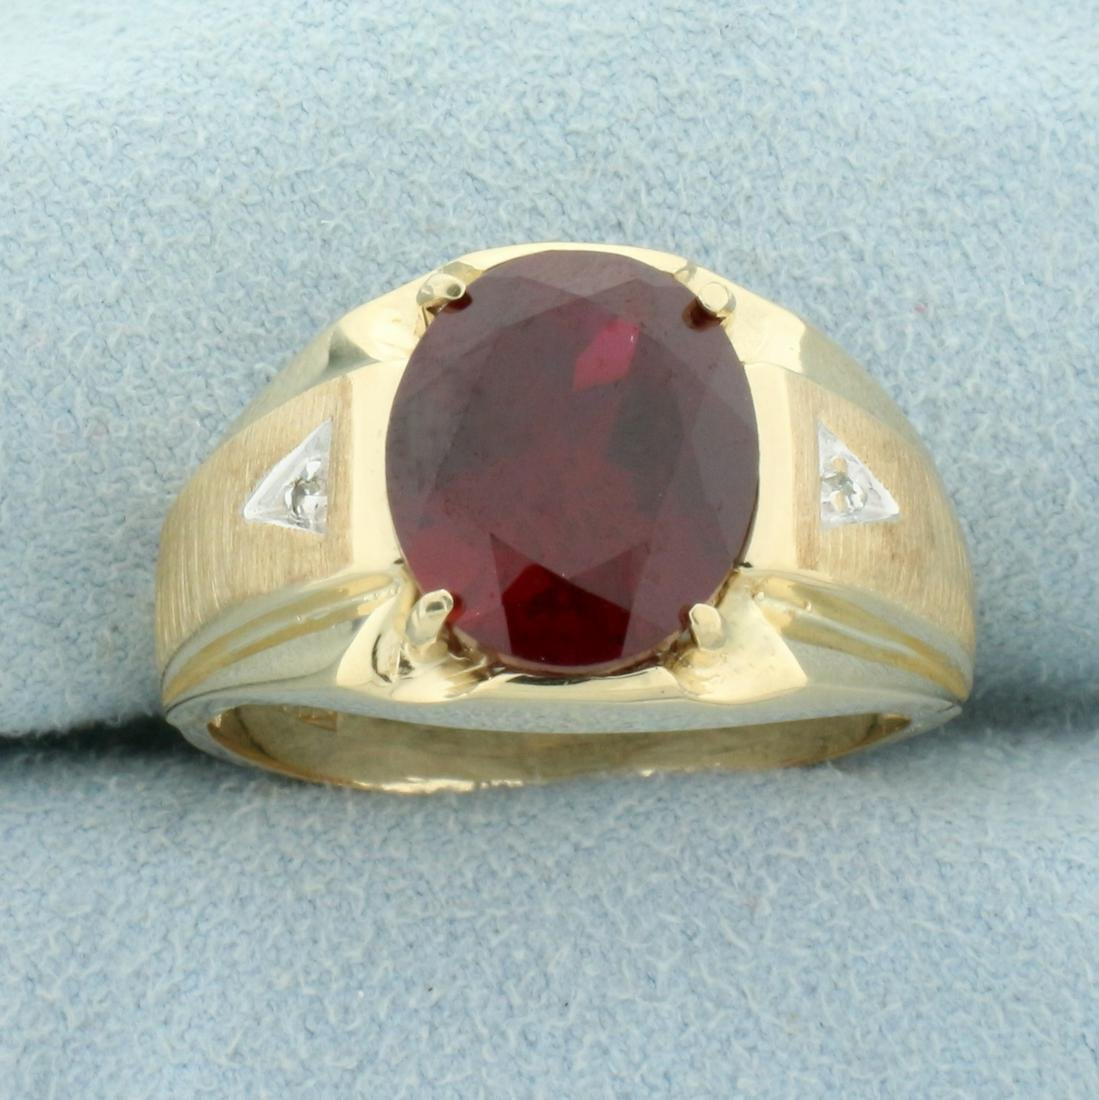 Men's 5ct Lab Ruby and Diamond Ring in 10K Yellow Gold